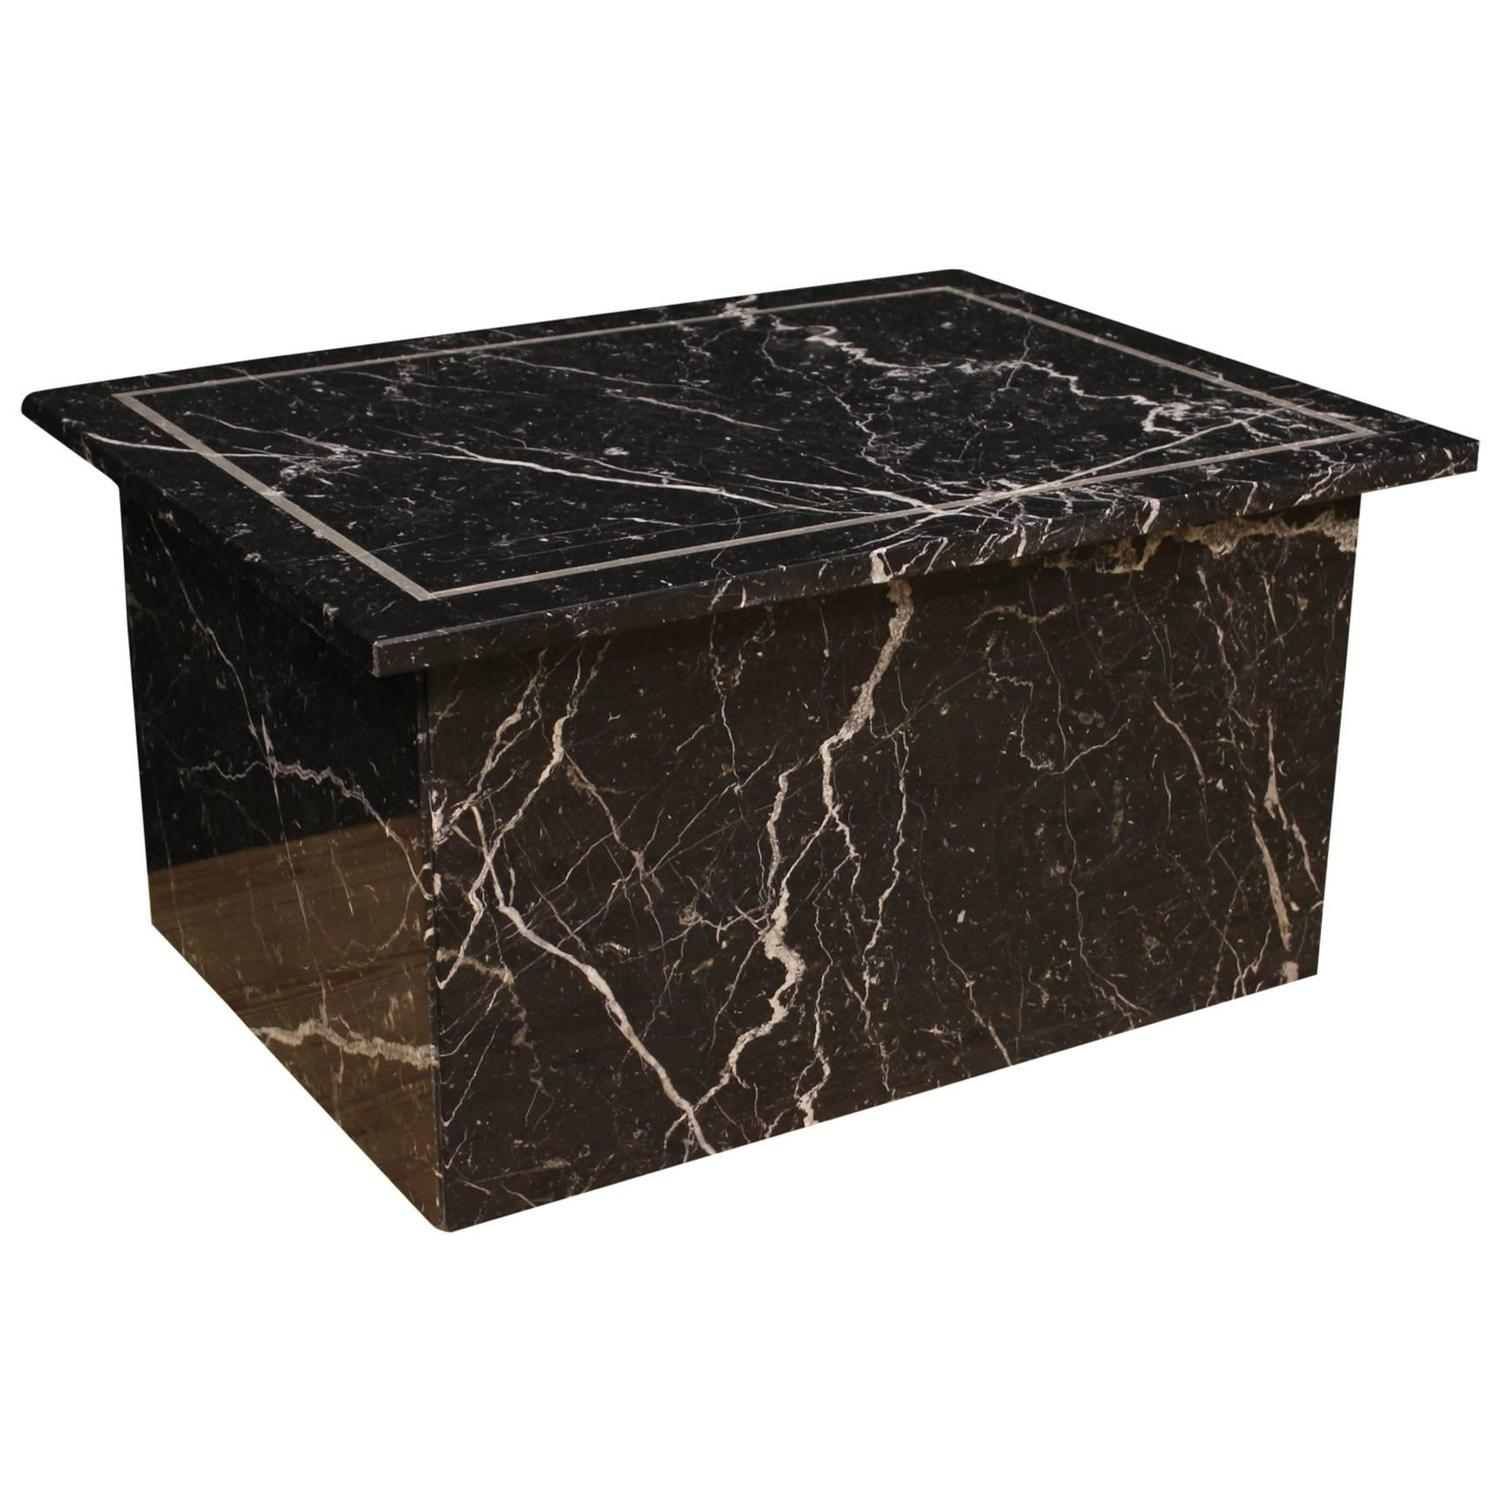 Marble Coffee Table Indonesia: 20th Century Coffee Table Made By Marble For Sale At 1stdibs